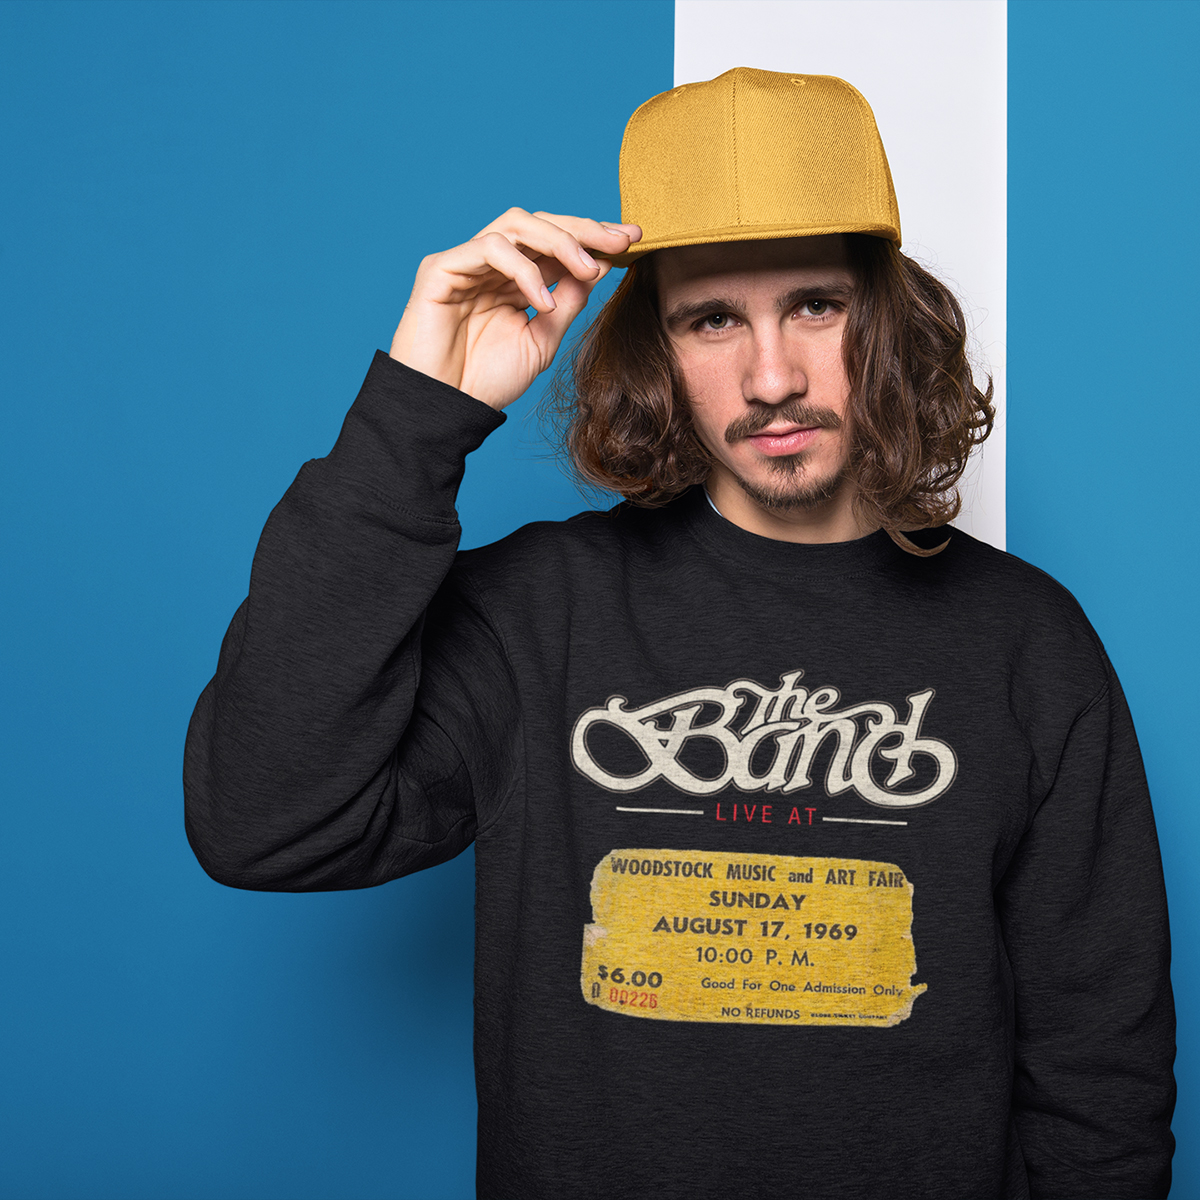 The Band Live at Woodstock Crewneck Sweatshirt